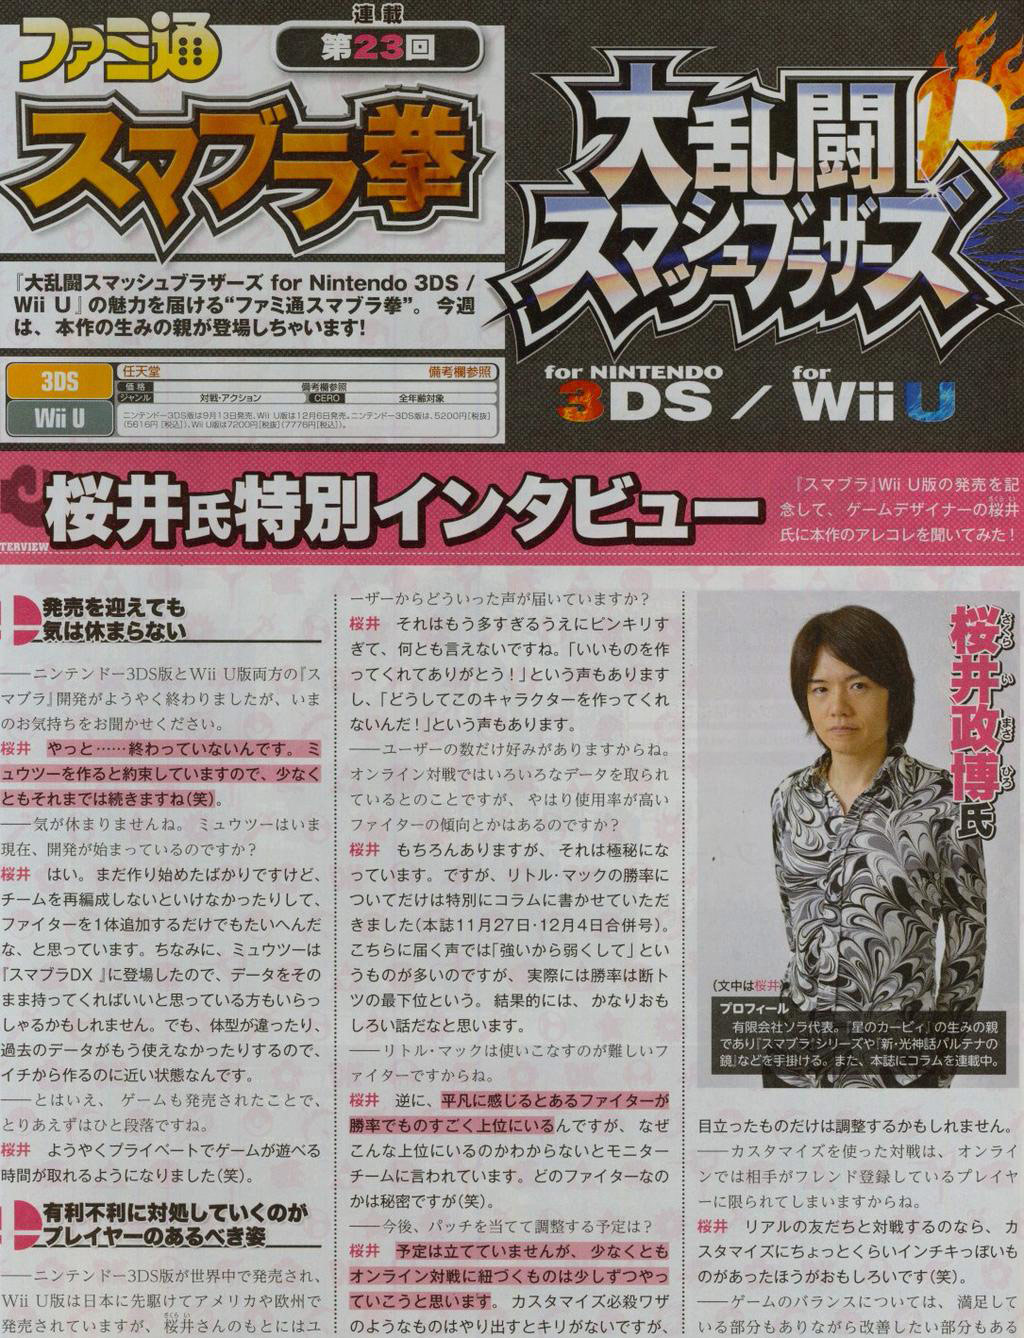 Sakura has no plans to balance Super Smash Bros. Wii U/3DS further, outside of fixes to improve online experience - Famitsu scan